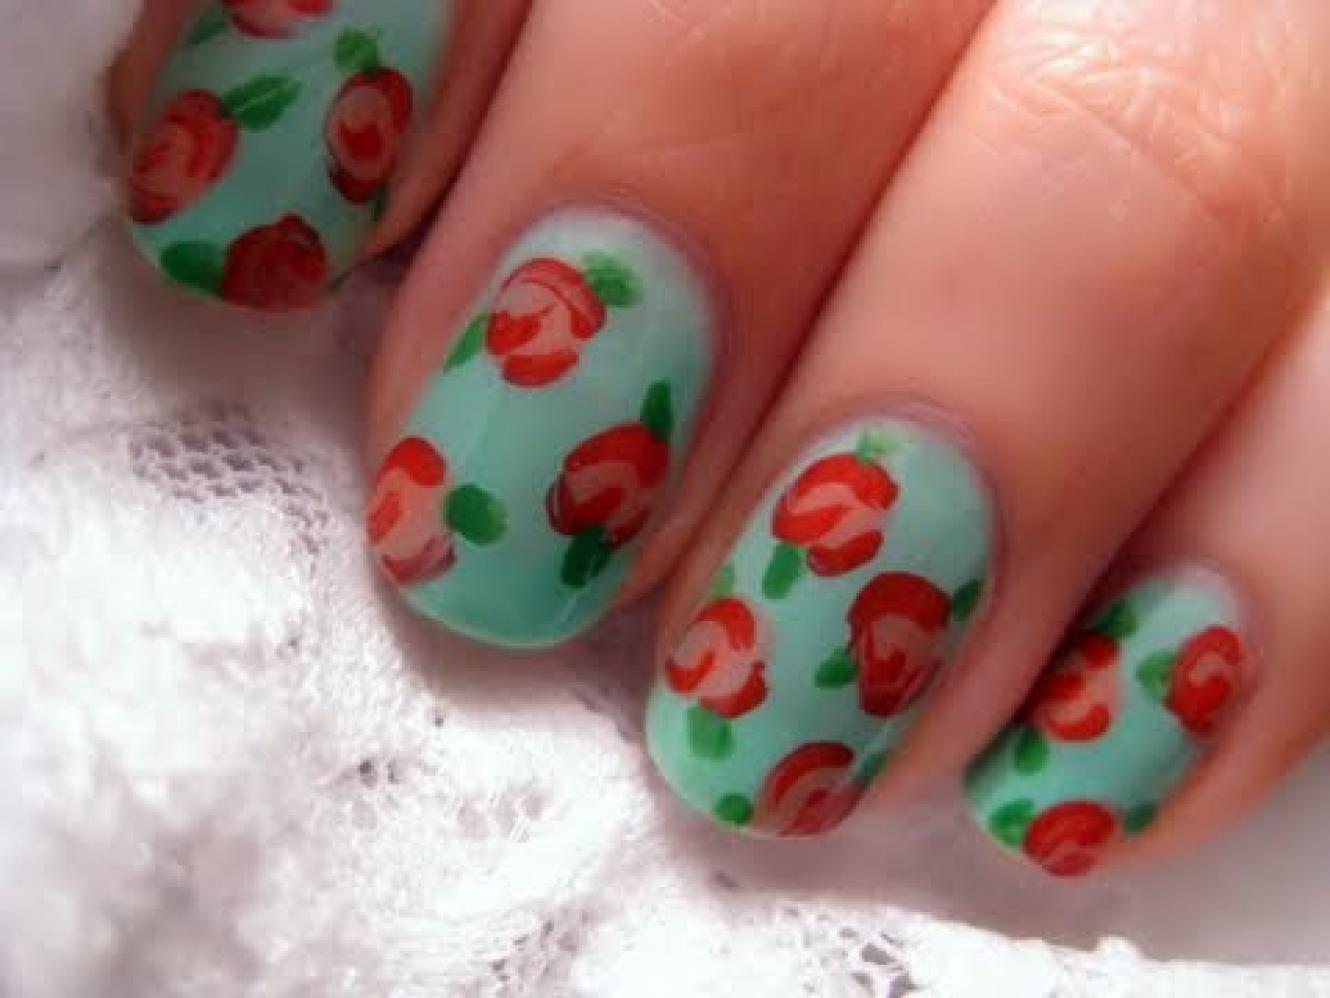 How to do easy nail art flowers best nails 2018 easy flower nail art thebridgesummit co prinsesfo Images